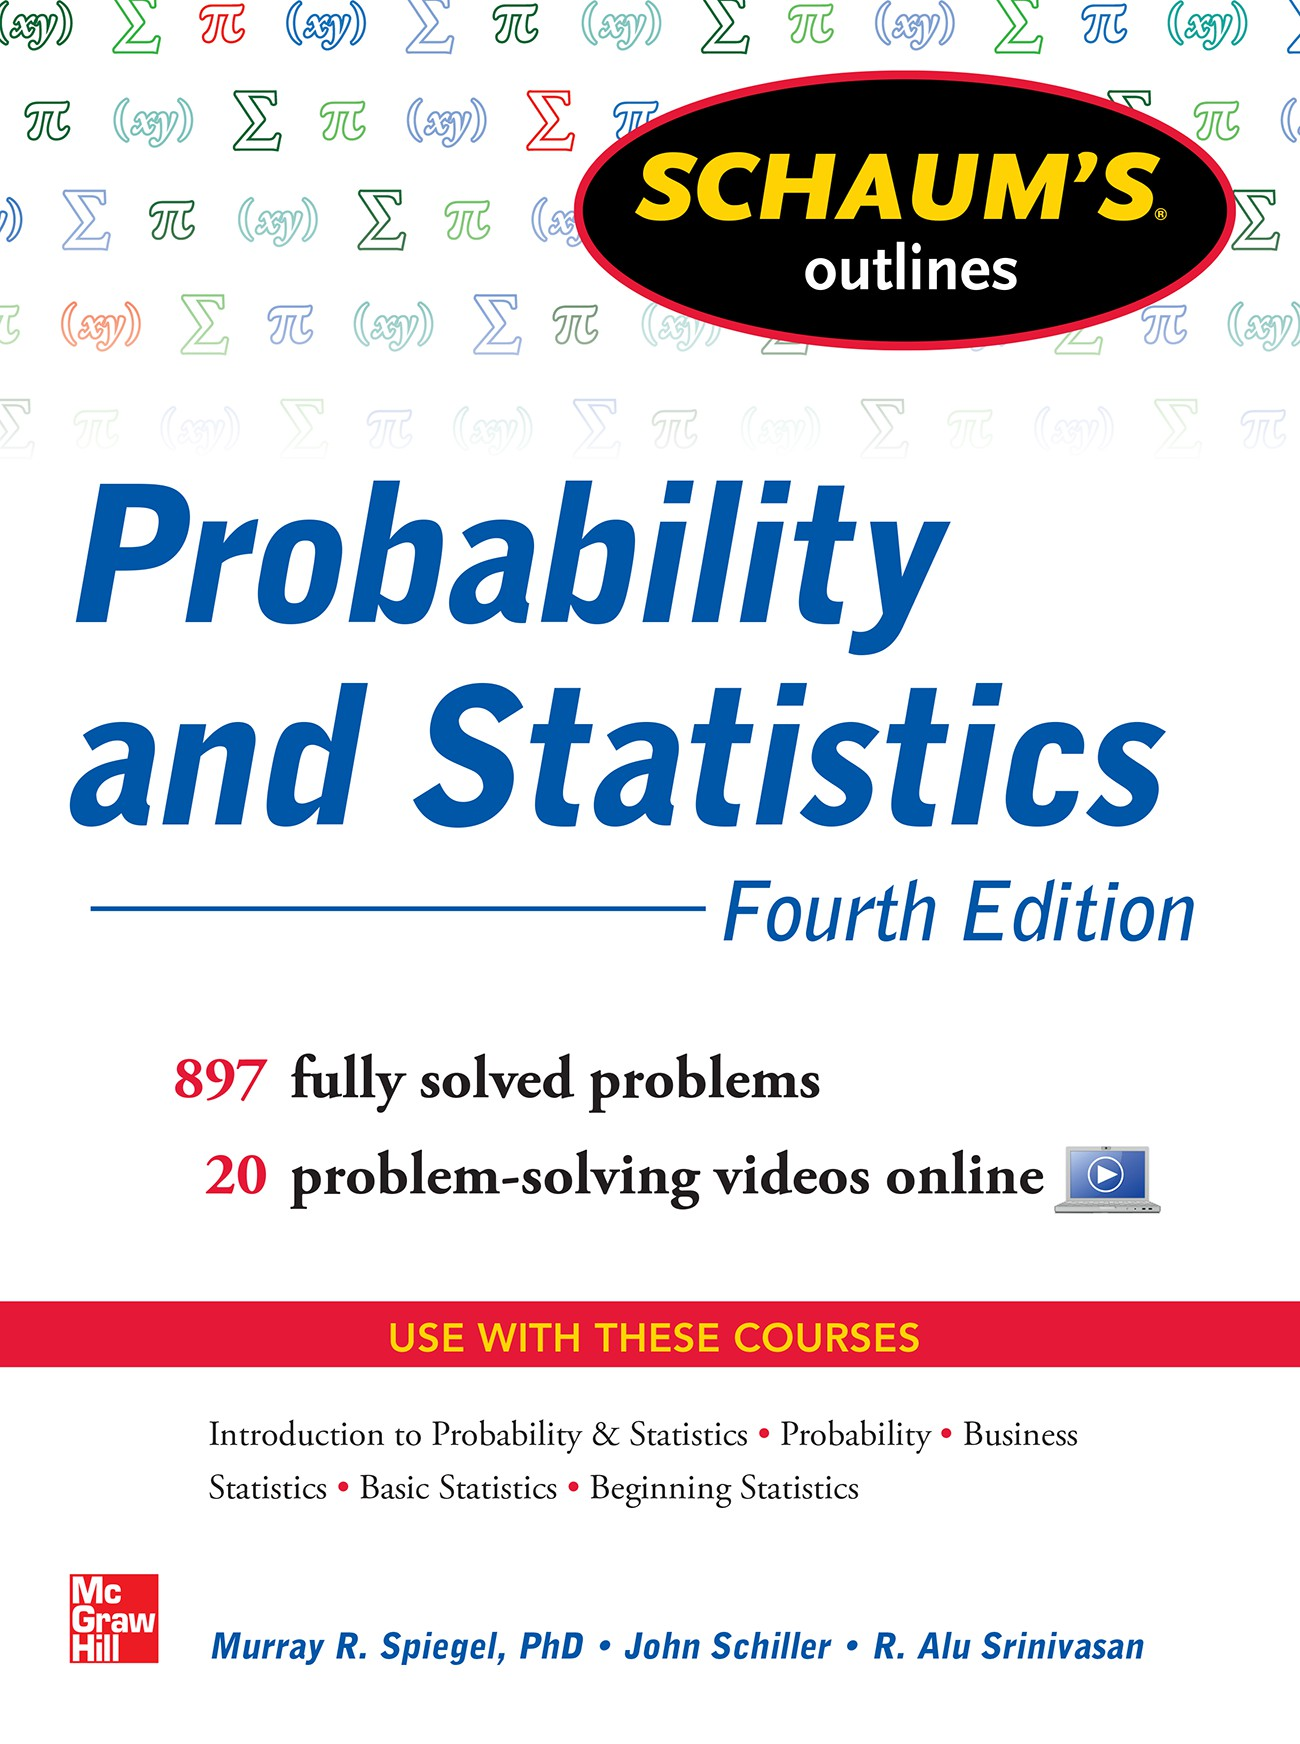 Schaum's Outline of Probability and Statistics, 4th Edition